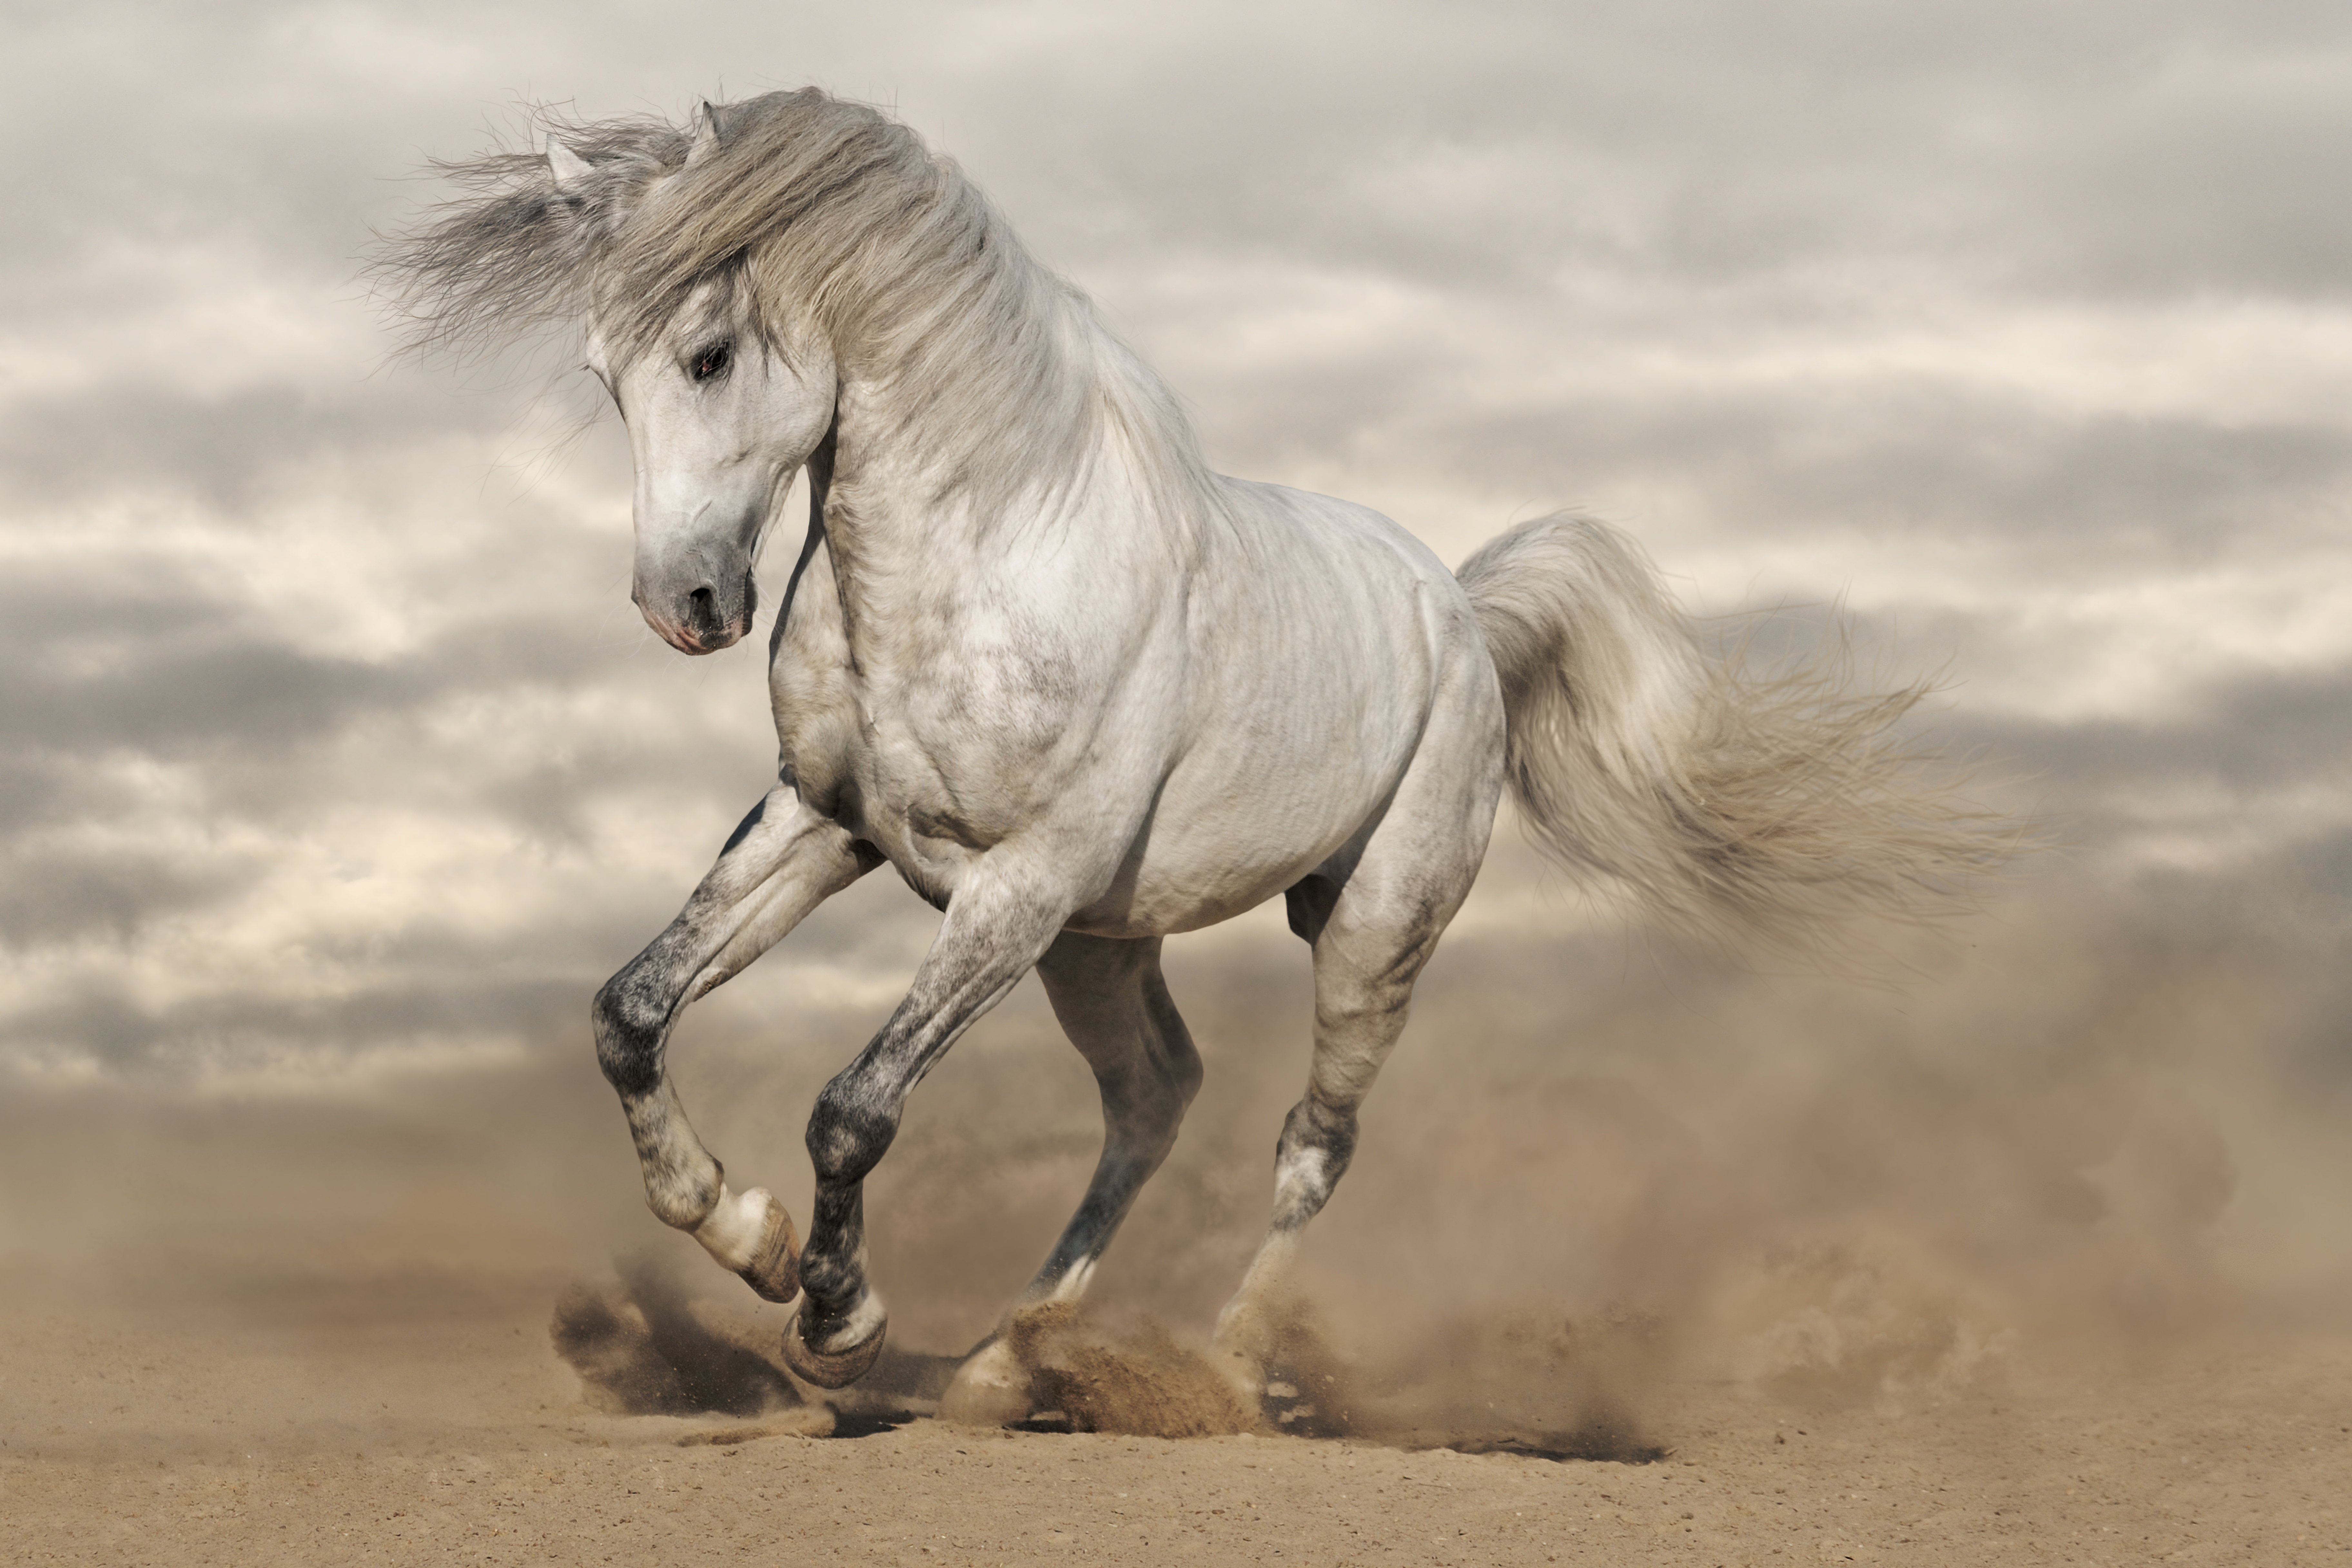 White horse wallpapers pictures images white horse wallpaper 7296x4864 voltagebd Images